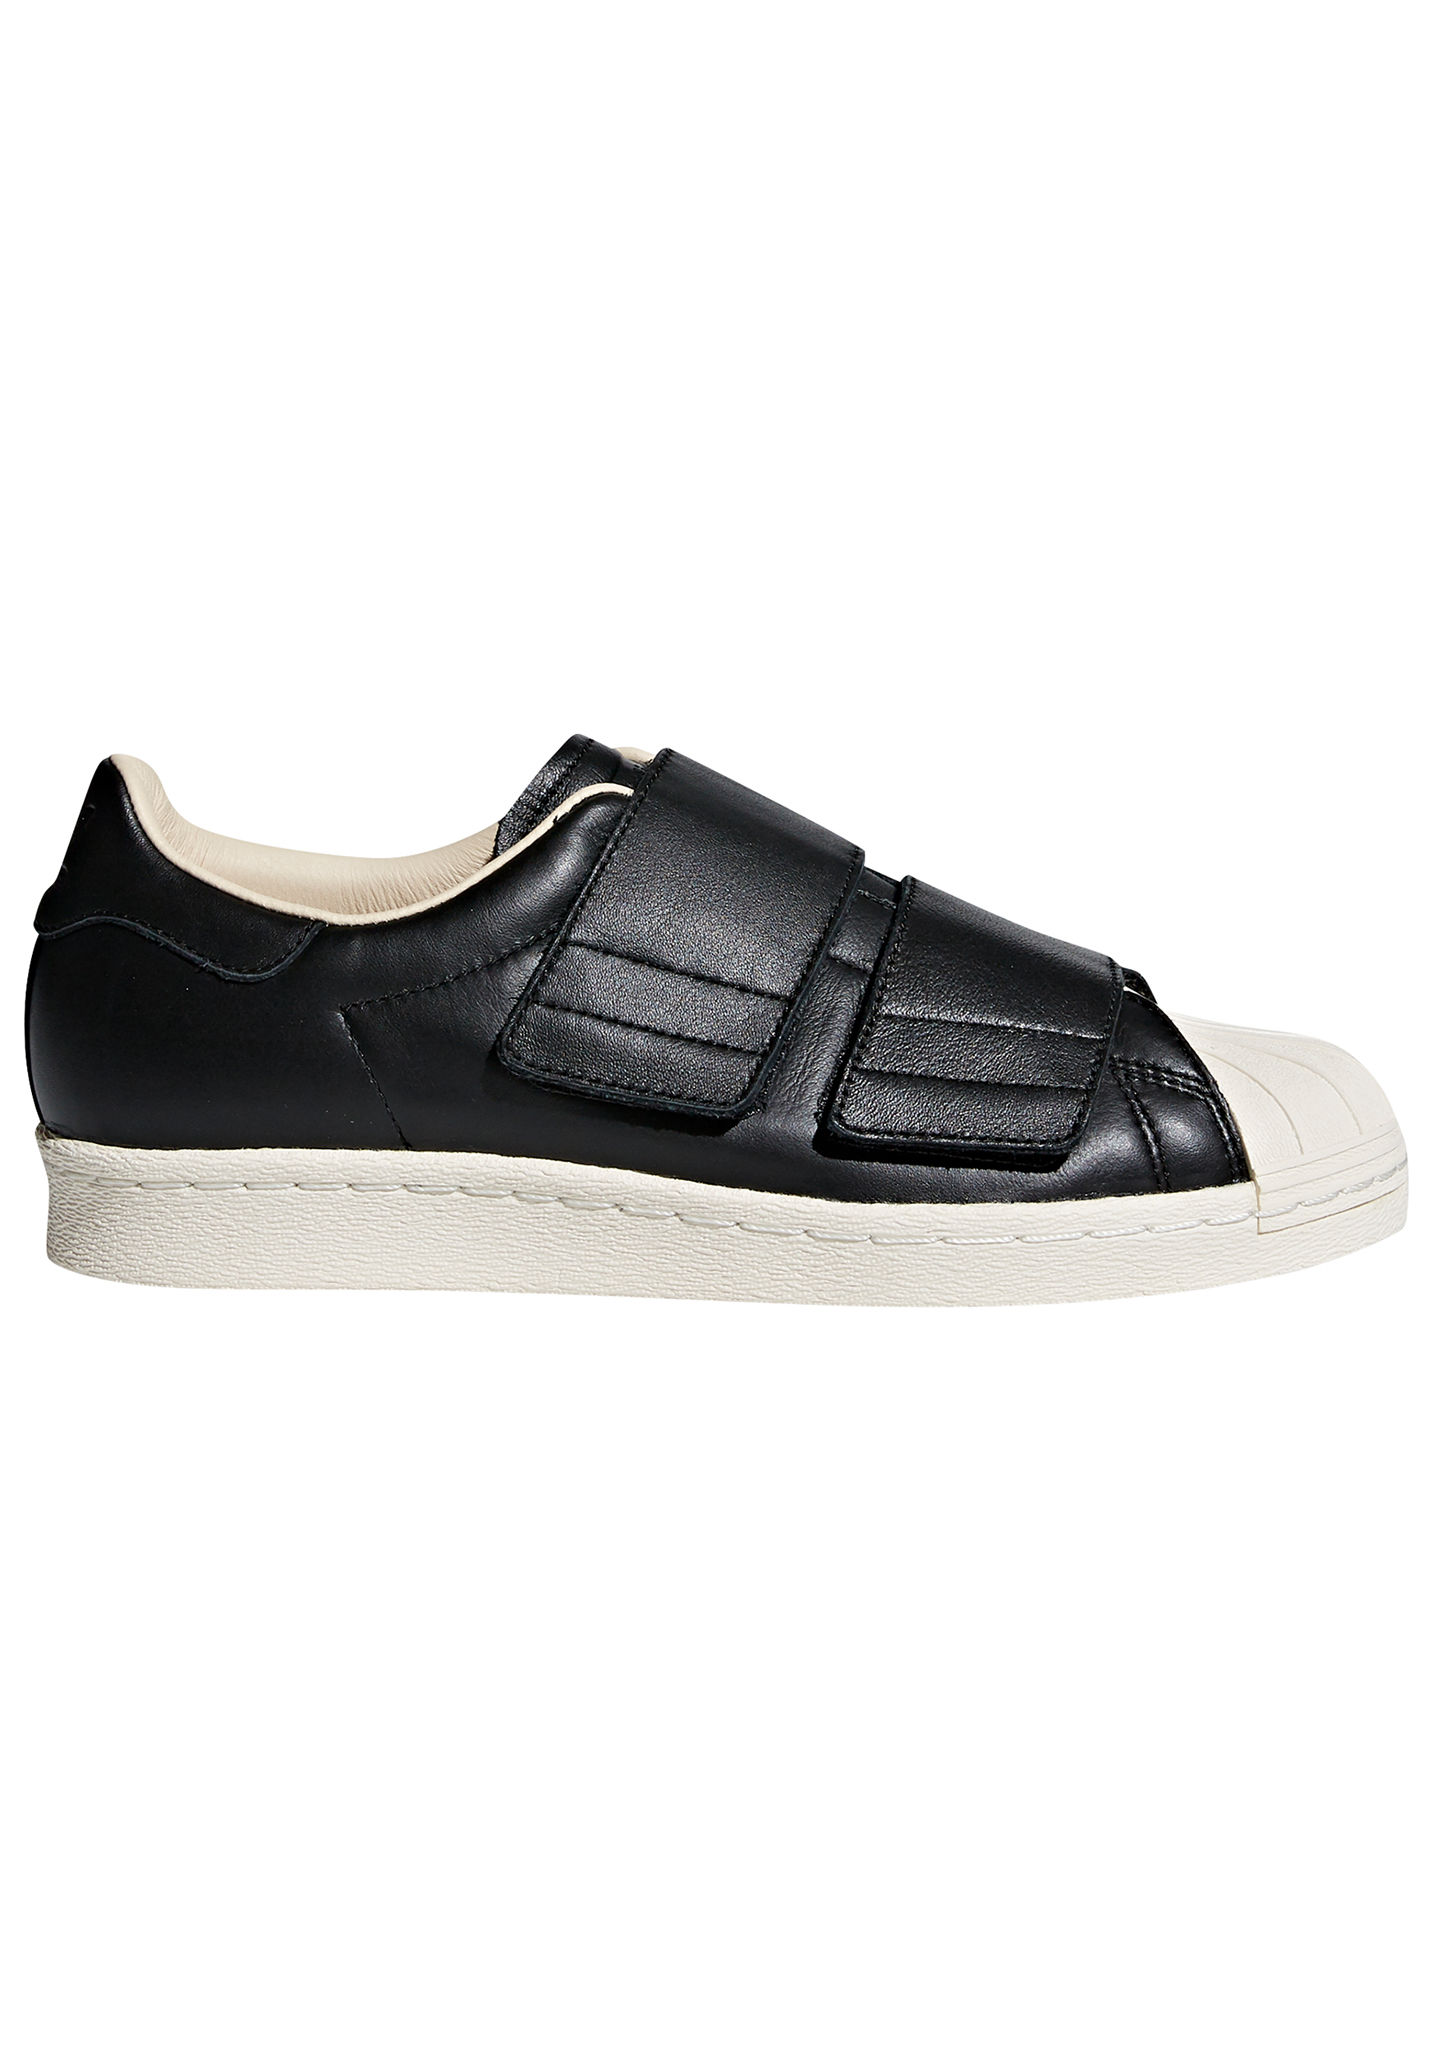 huge selection of 47cfe 6b4a6 ADIDAS ORIGINALS Superstar 80s Cf - Sneakers for Women - Black - Planet  Sports